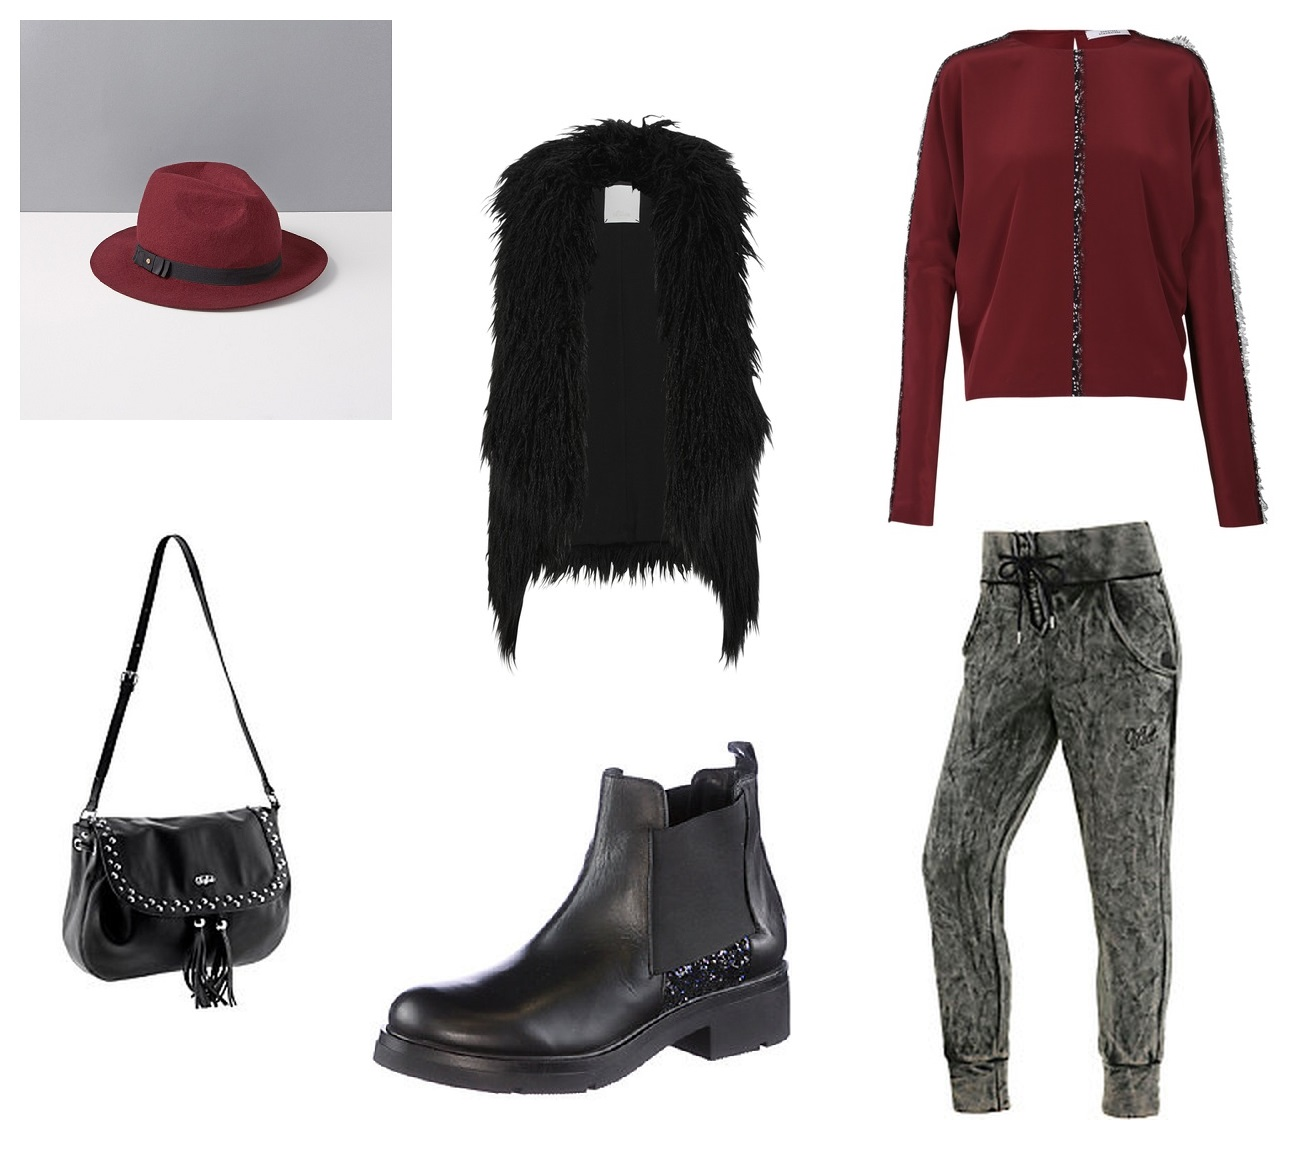 Styleguide - Casual Chic